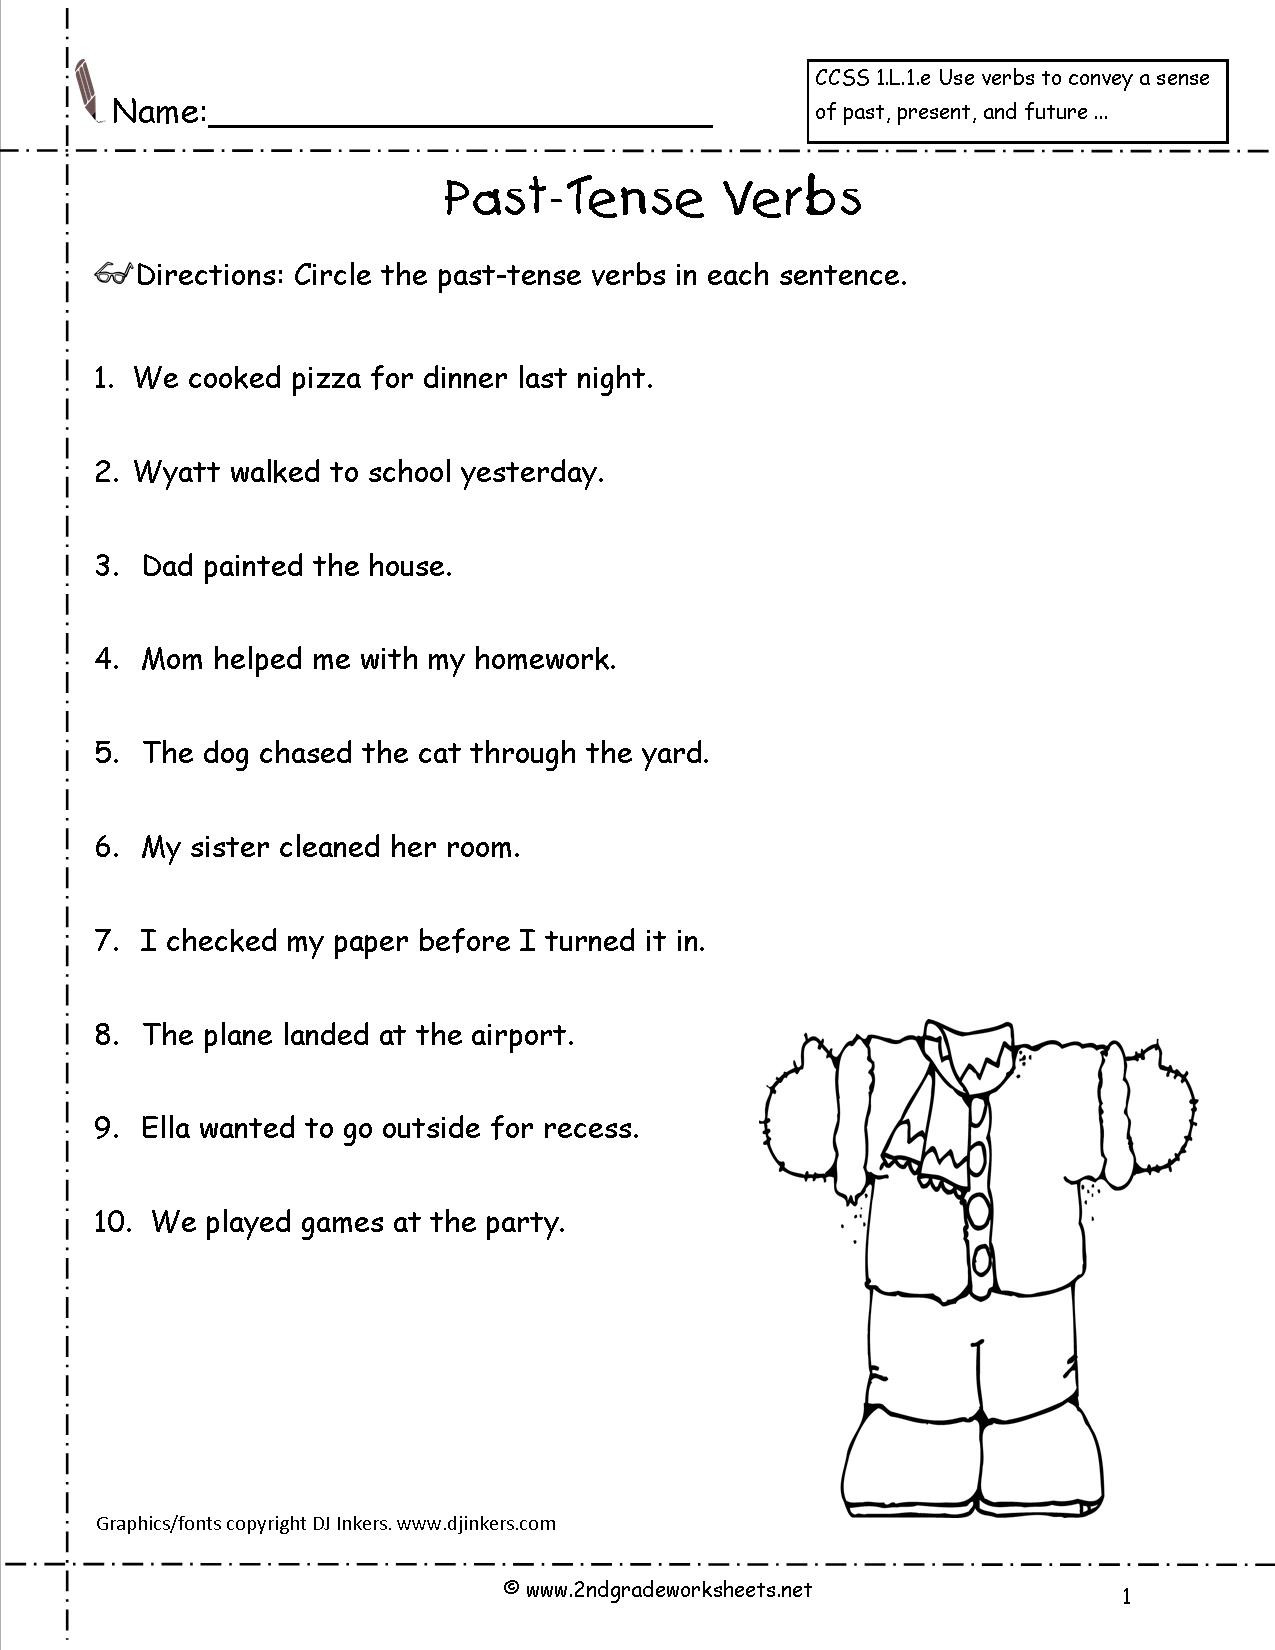 Verb Tense Worksheets 3rd Grade Simple Past Tense Worksheets Grade 3